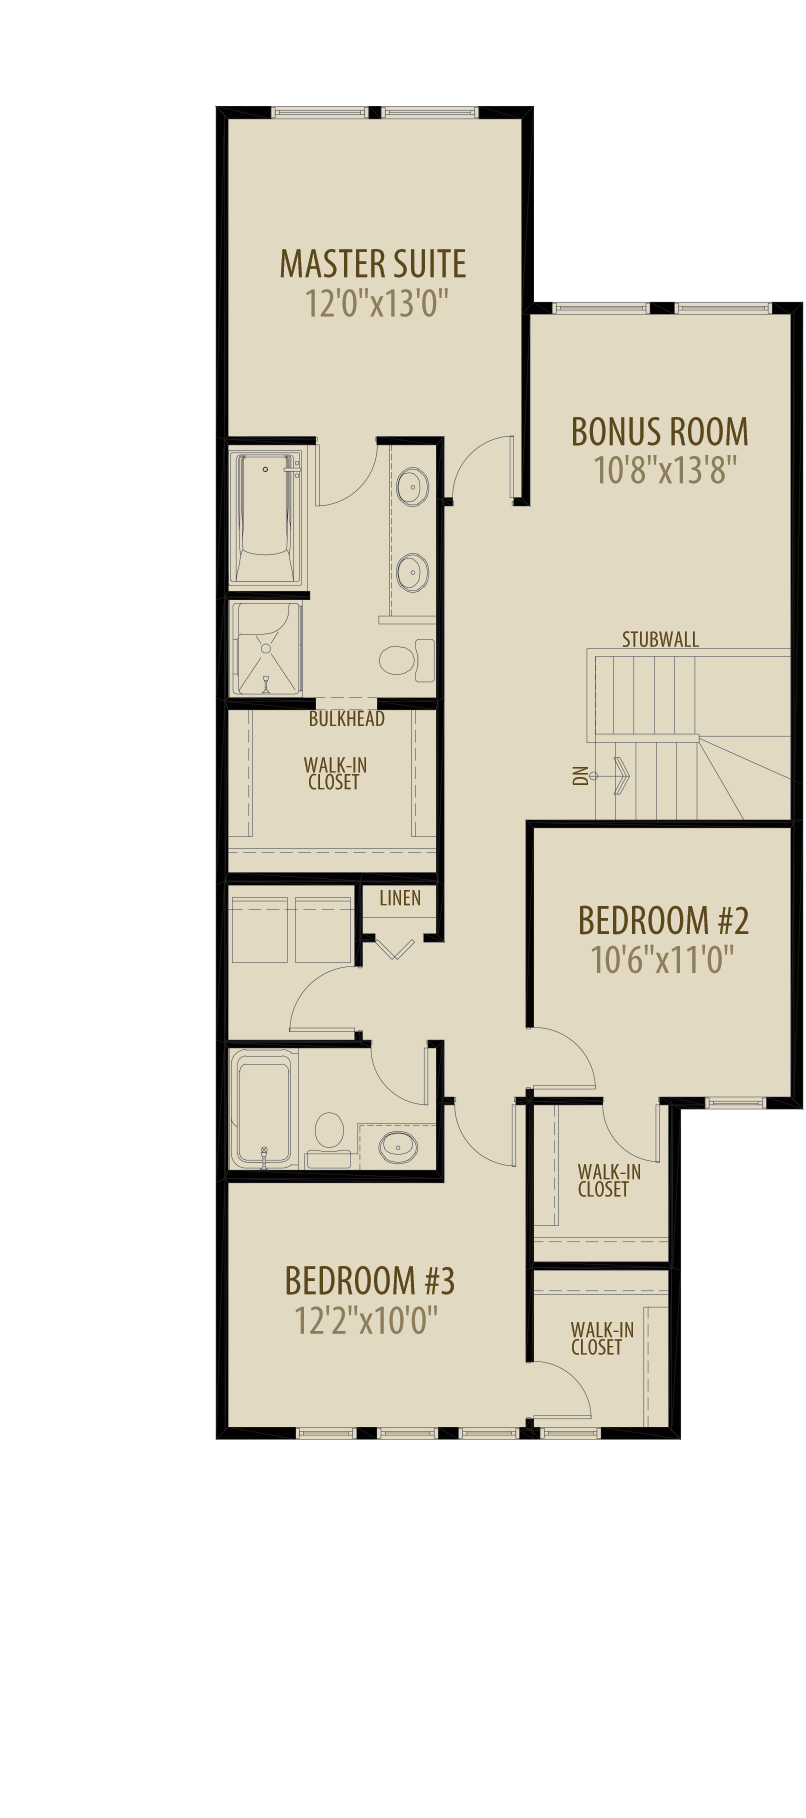 Expanded Bedroom Adds 46 sq ft